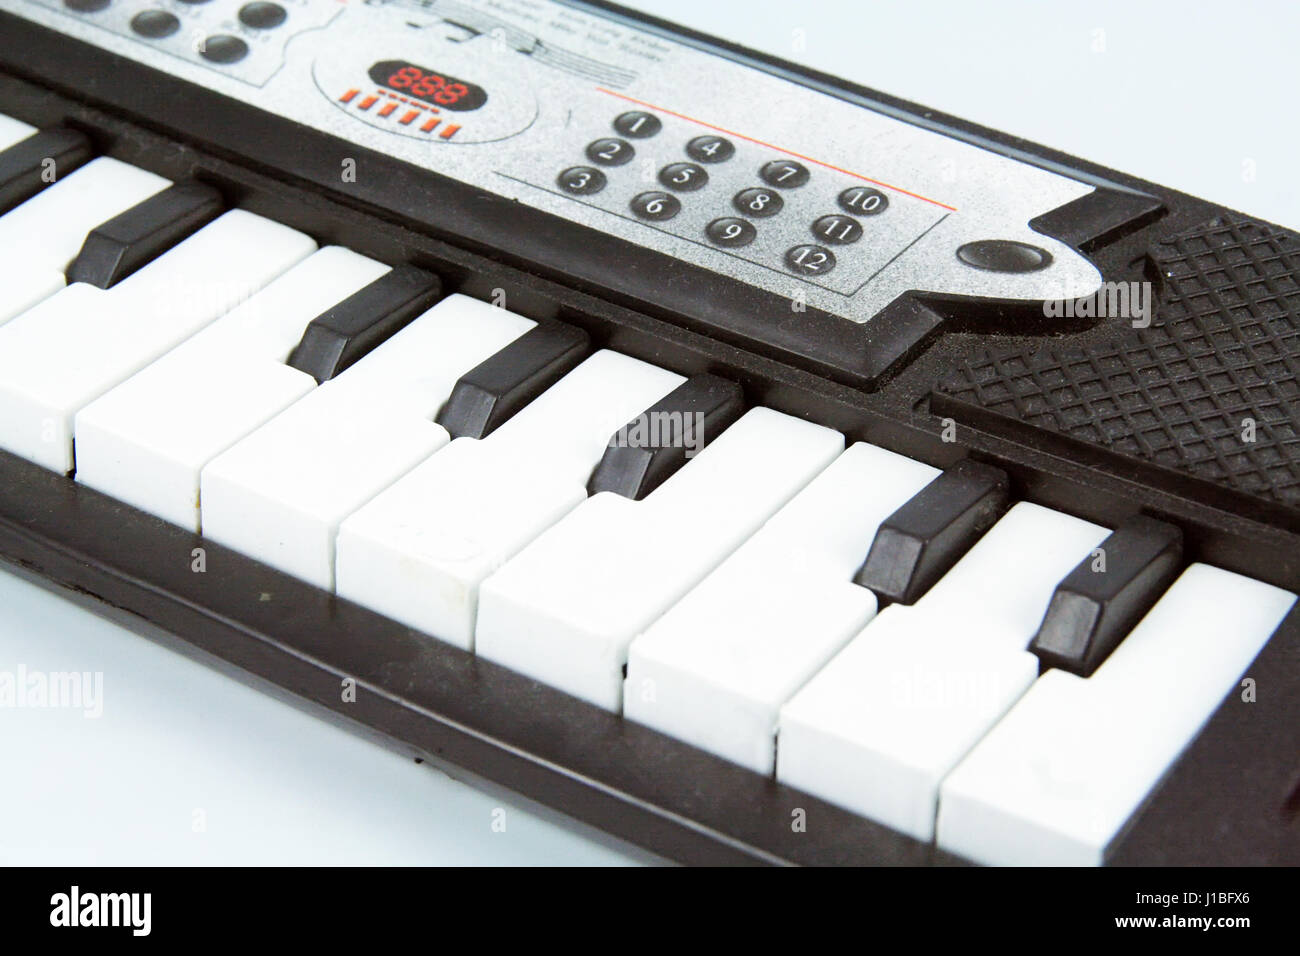 Synthesizer toy. Kids instrument. - Stock Image